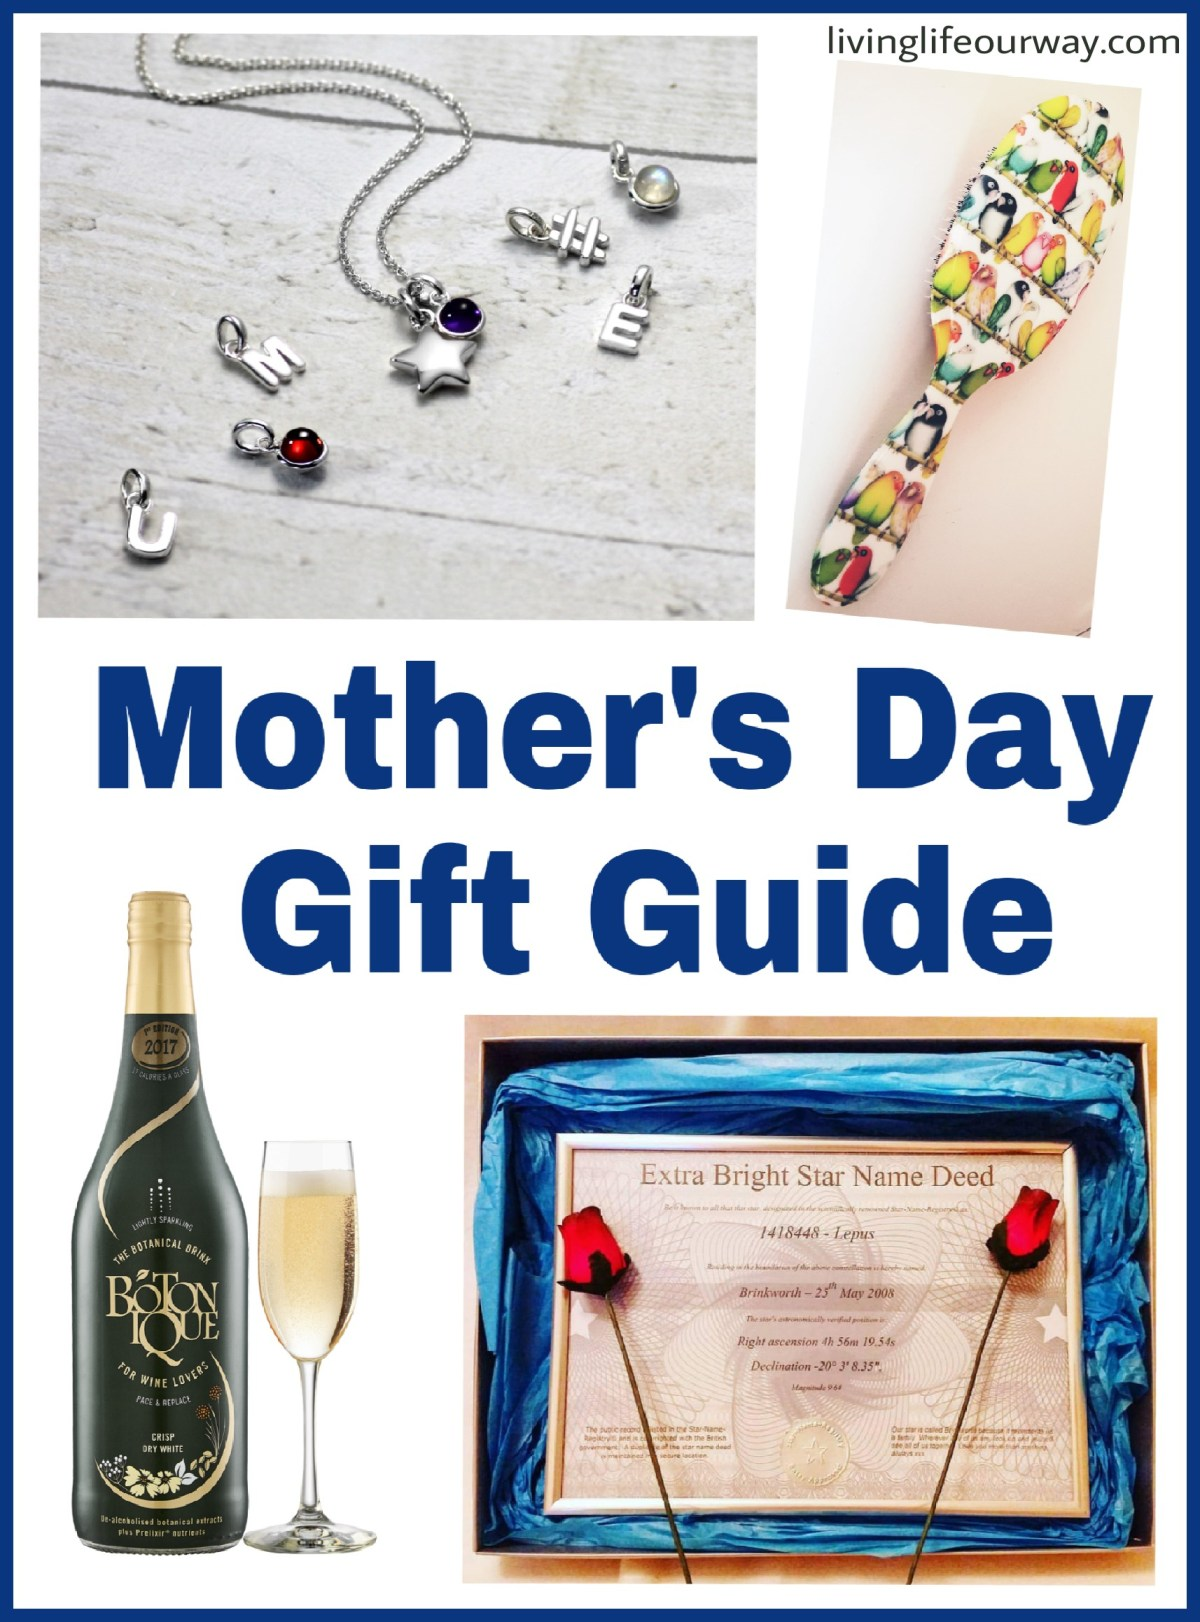 Mothers Day Gift Guide & Giveaways